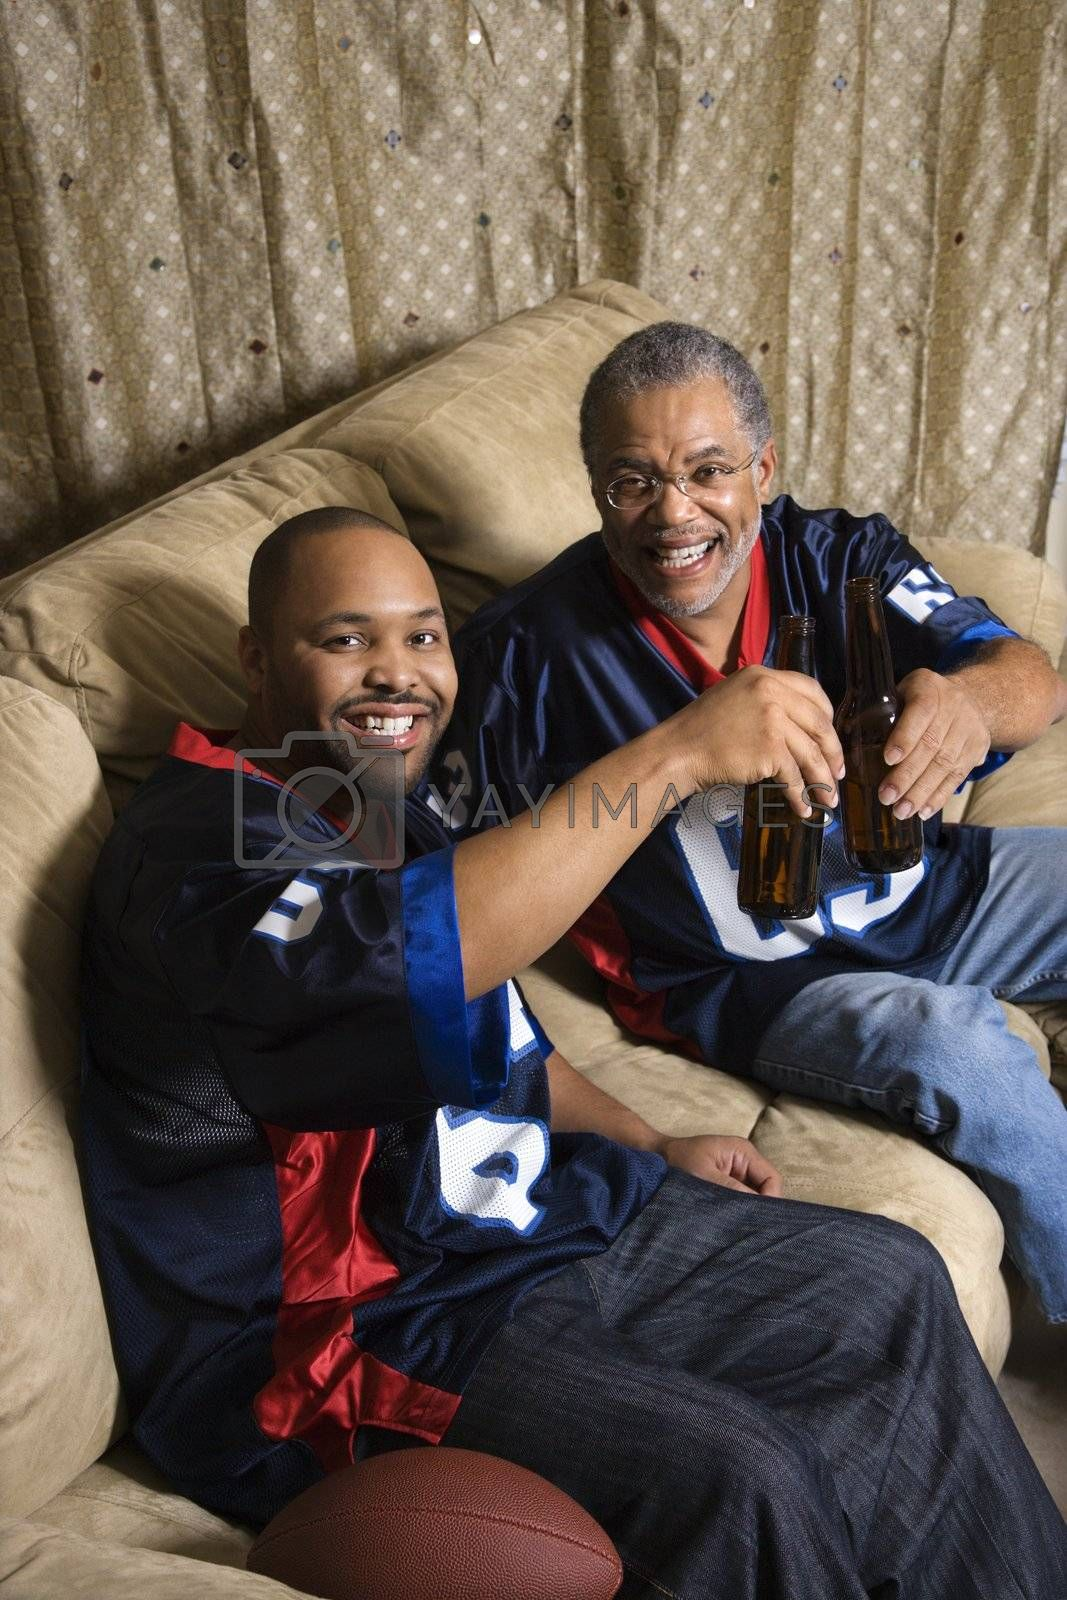 Portrait of an African-American father and son toasting with beer on couch.